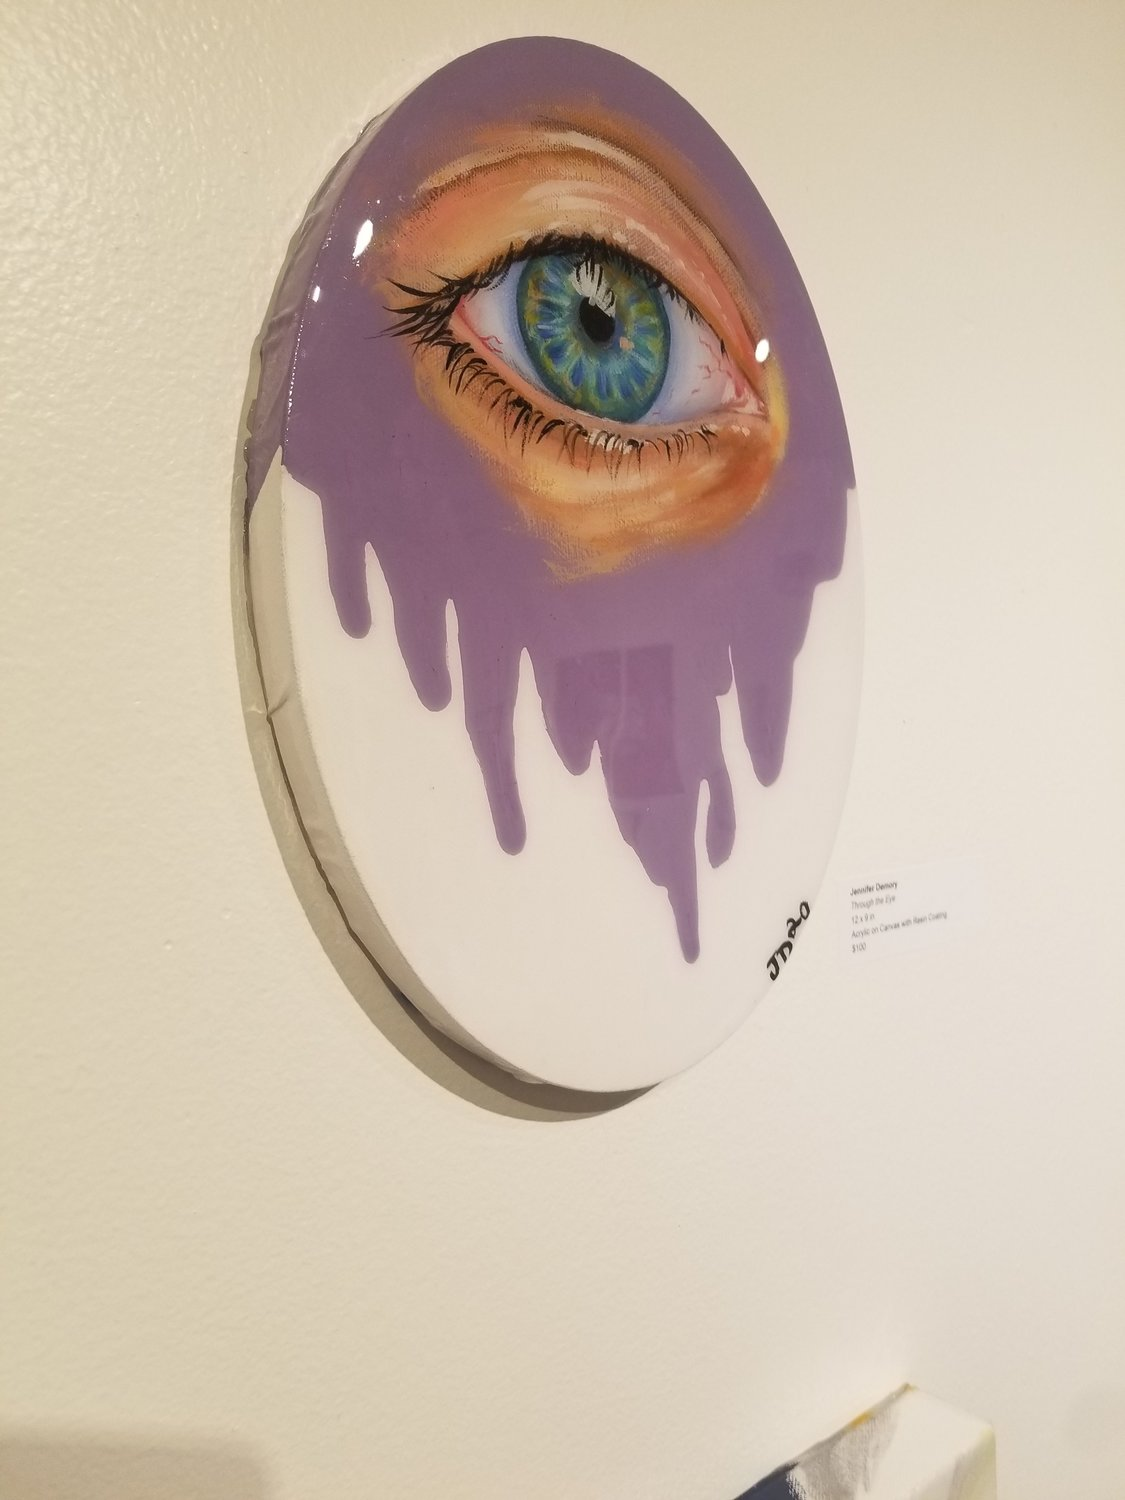 """Through the Eye"" by Jennifer Demory. 12x9 inches. Acrylic on canvas with resin coating. $100. The hyperrealism of the fantastic blue eye is contrasted with an almost '80s homage to unicorn purple spilling through. Encased in resin, Demory  creates a freak show of preservation of the all-seeing eye."